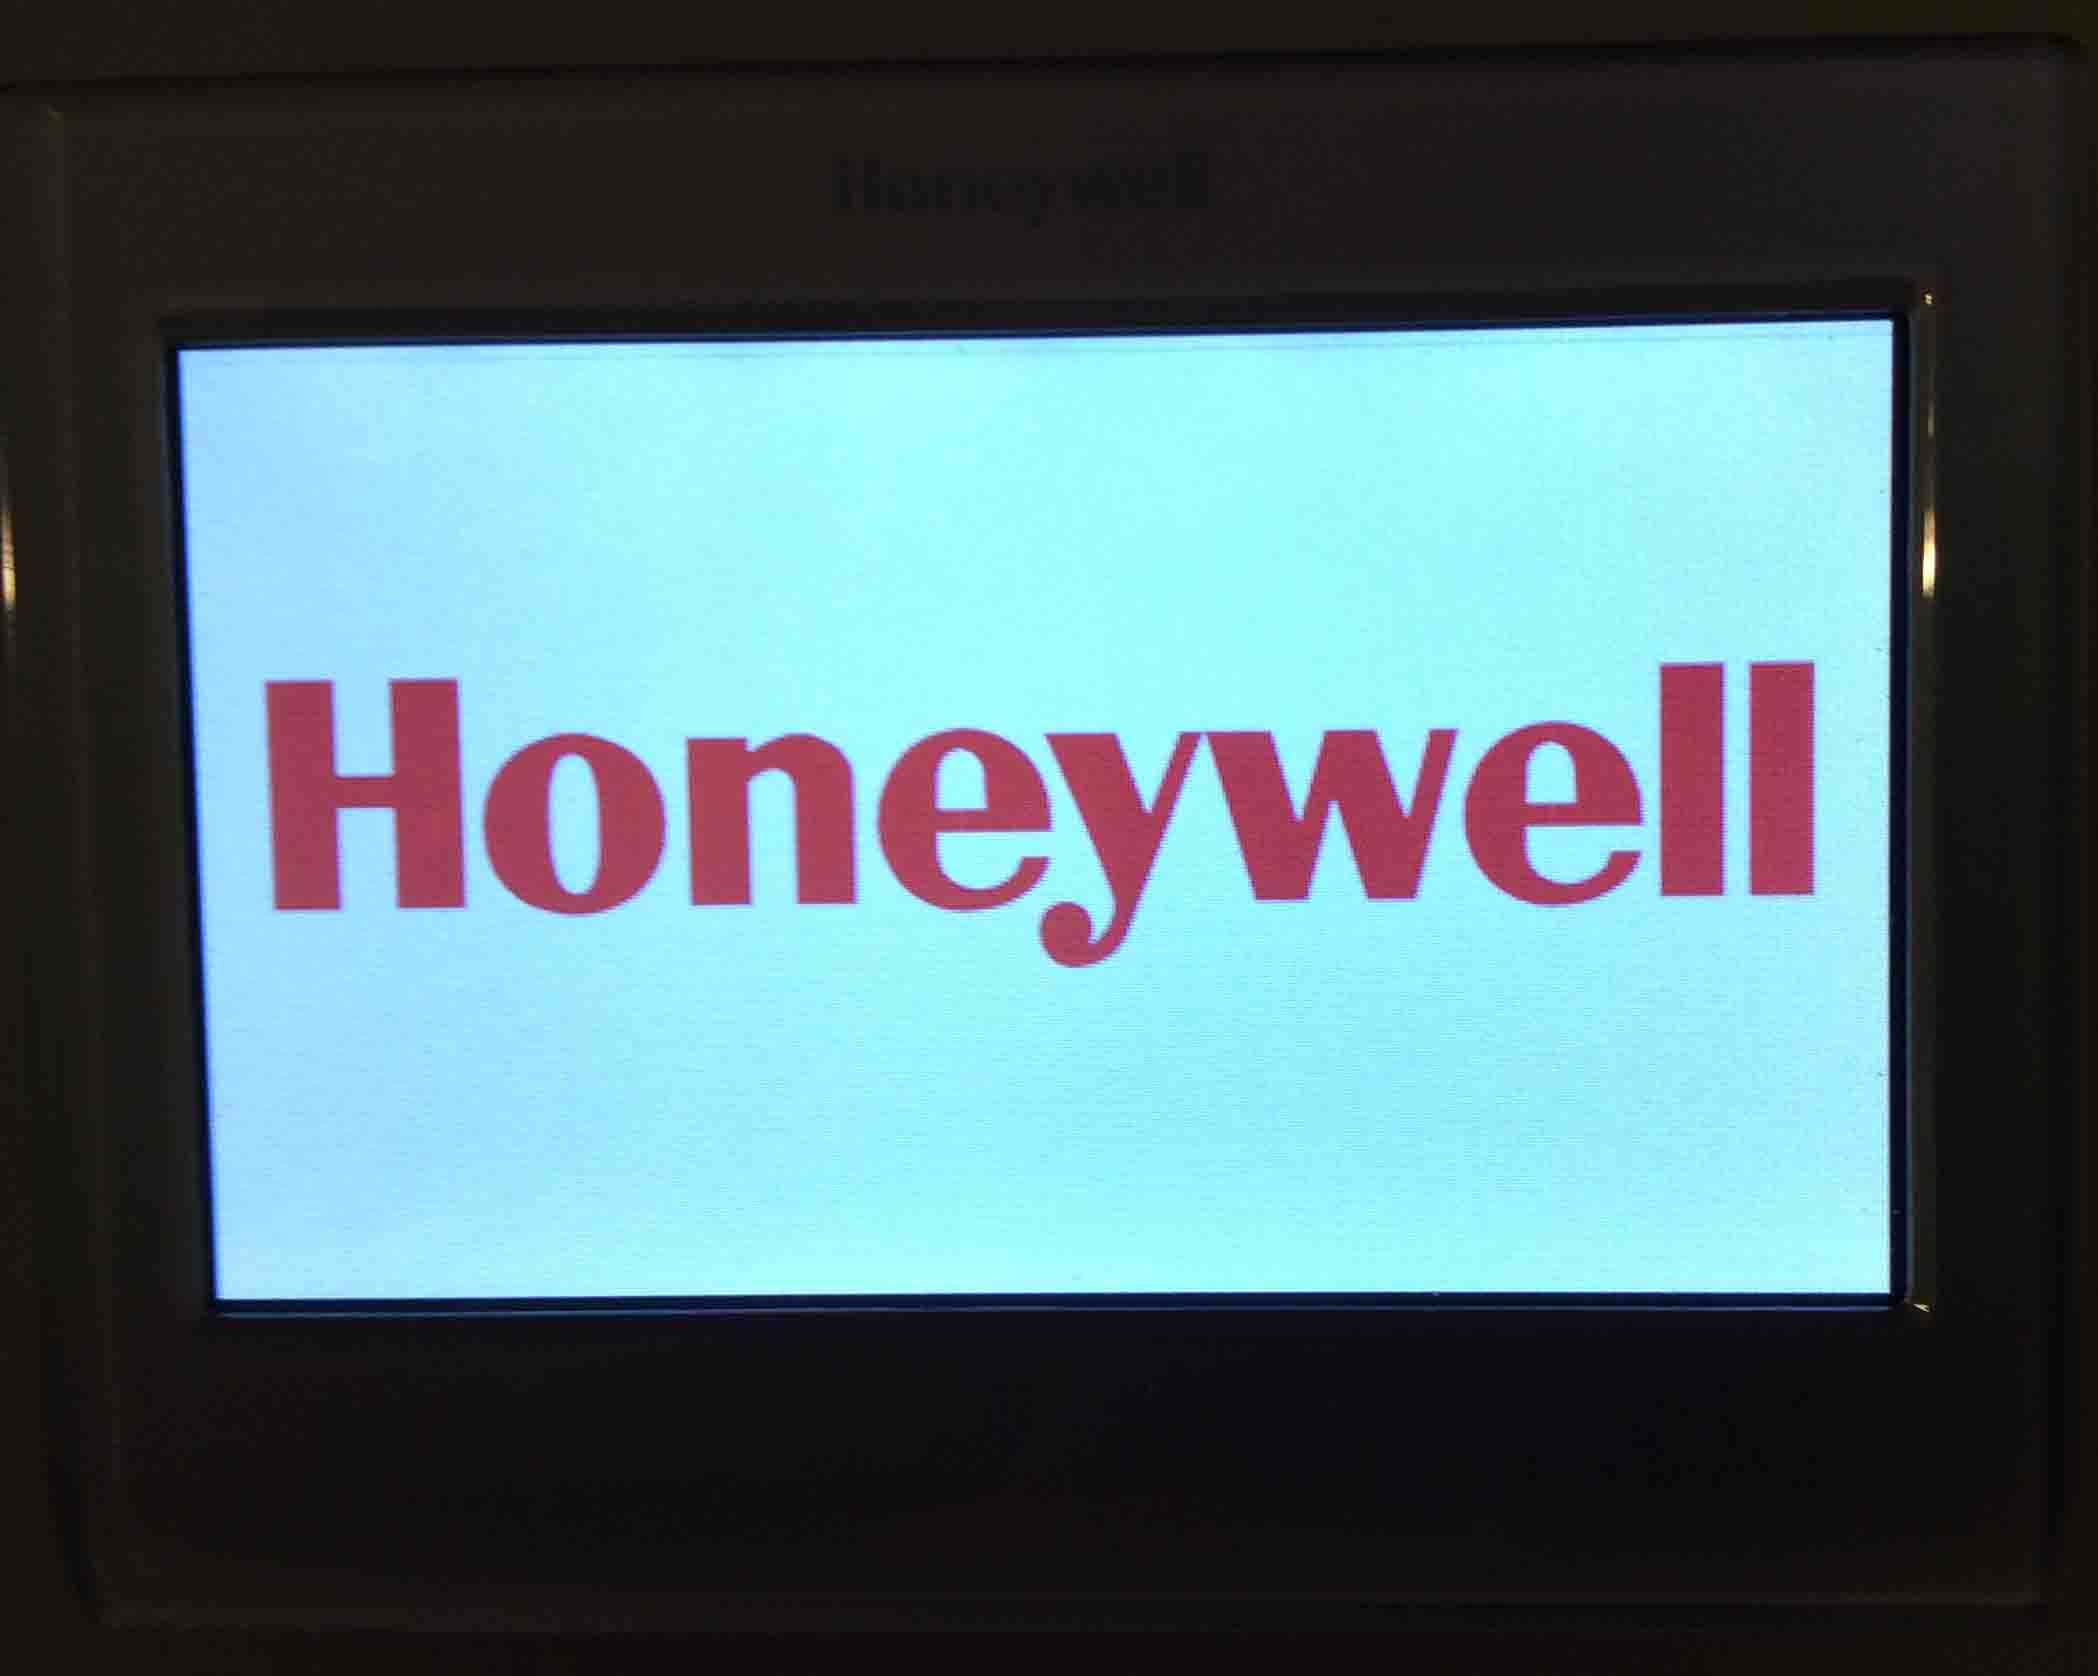 HoneywellRTH9580WFSmartThermostatBootScreen_001?resize=825%2C510&ssl=1 honeywell smart thermostat wiring instructions rth9580wf tom's honeywell rth9580wf wiring diagram at virtualis.co